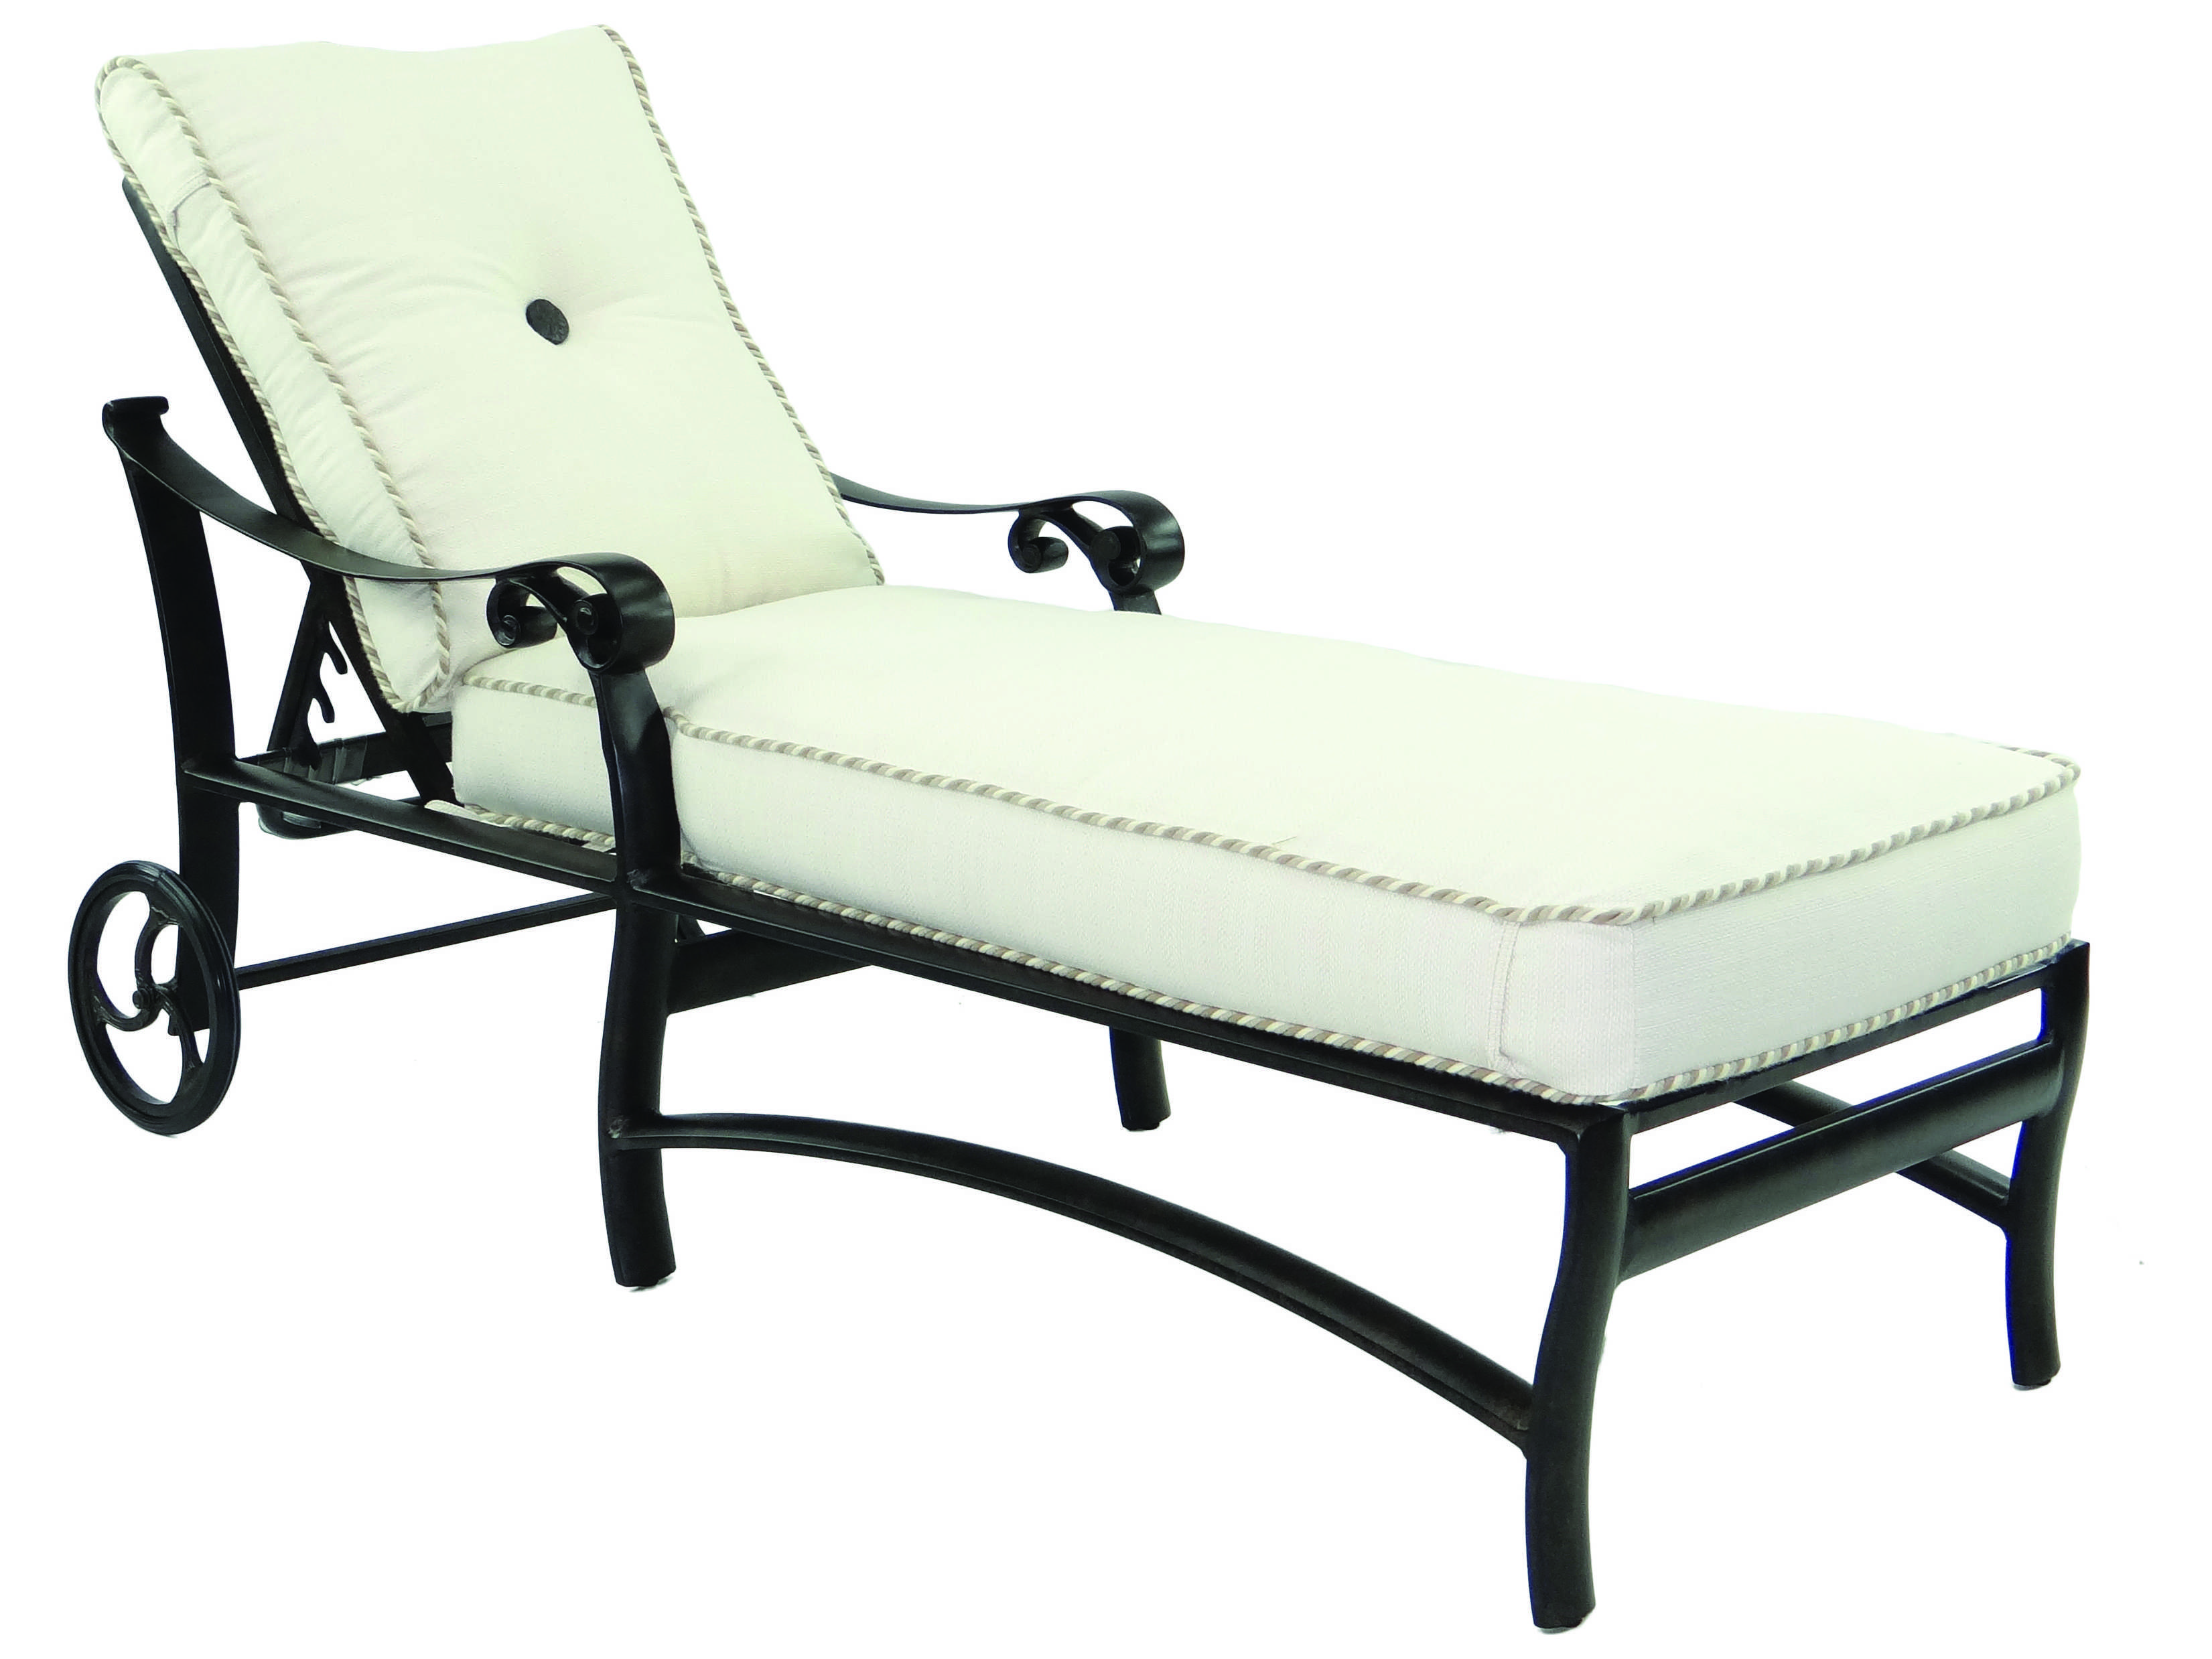 Castelle bellanova cushion cast aluminum adjustable chaise for Aluminum chaise lounge with wheels